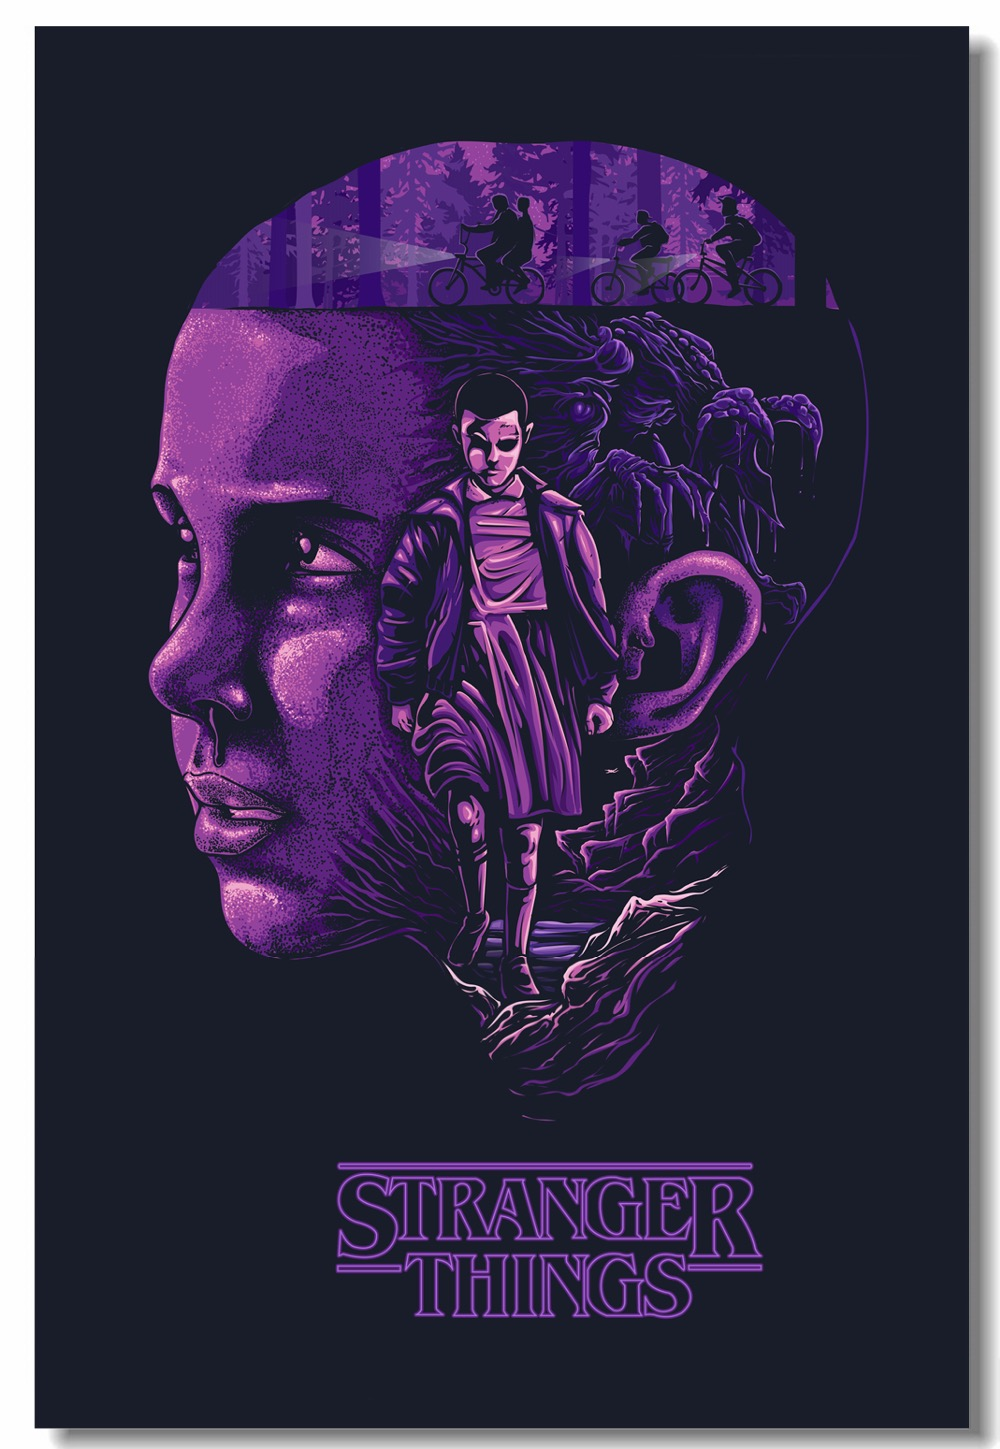 Us 5 99 25 offcustom canvas wall mural stranger things tv series poster stranger things paintings eleven millie wall stickers wallpaper 0236 in